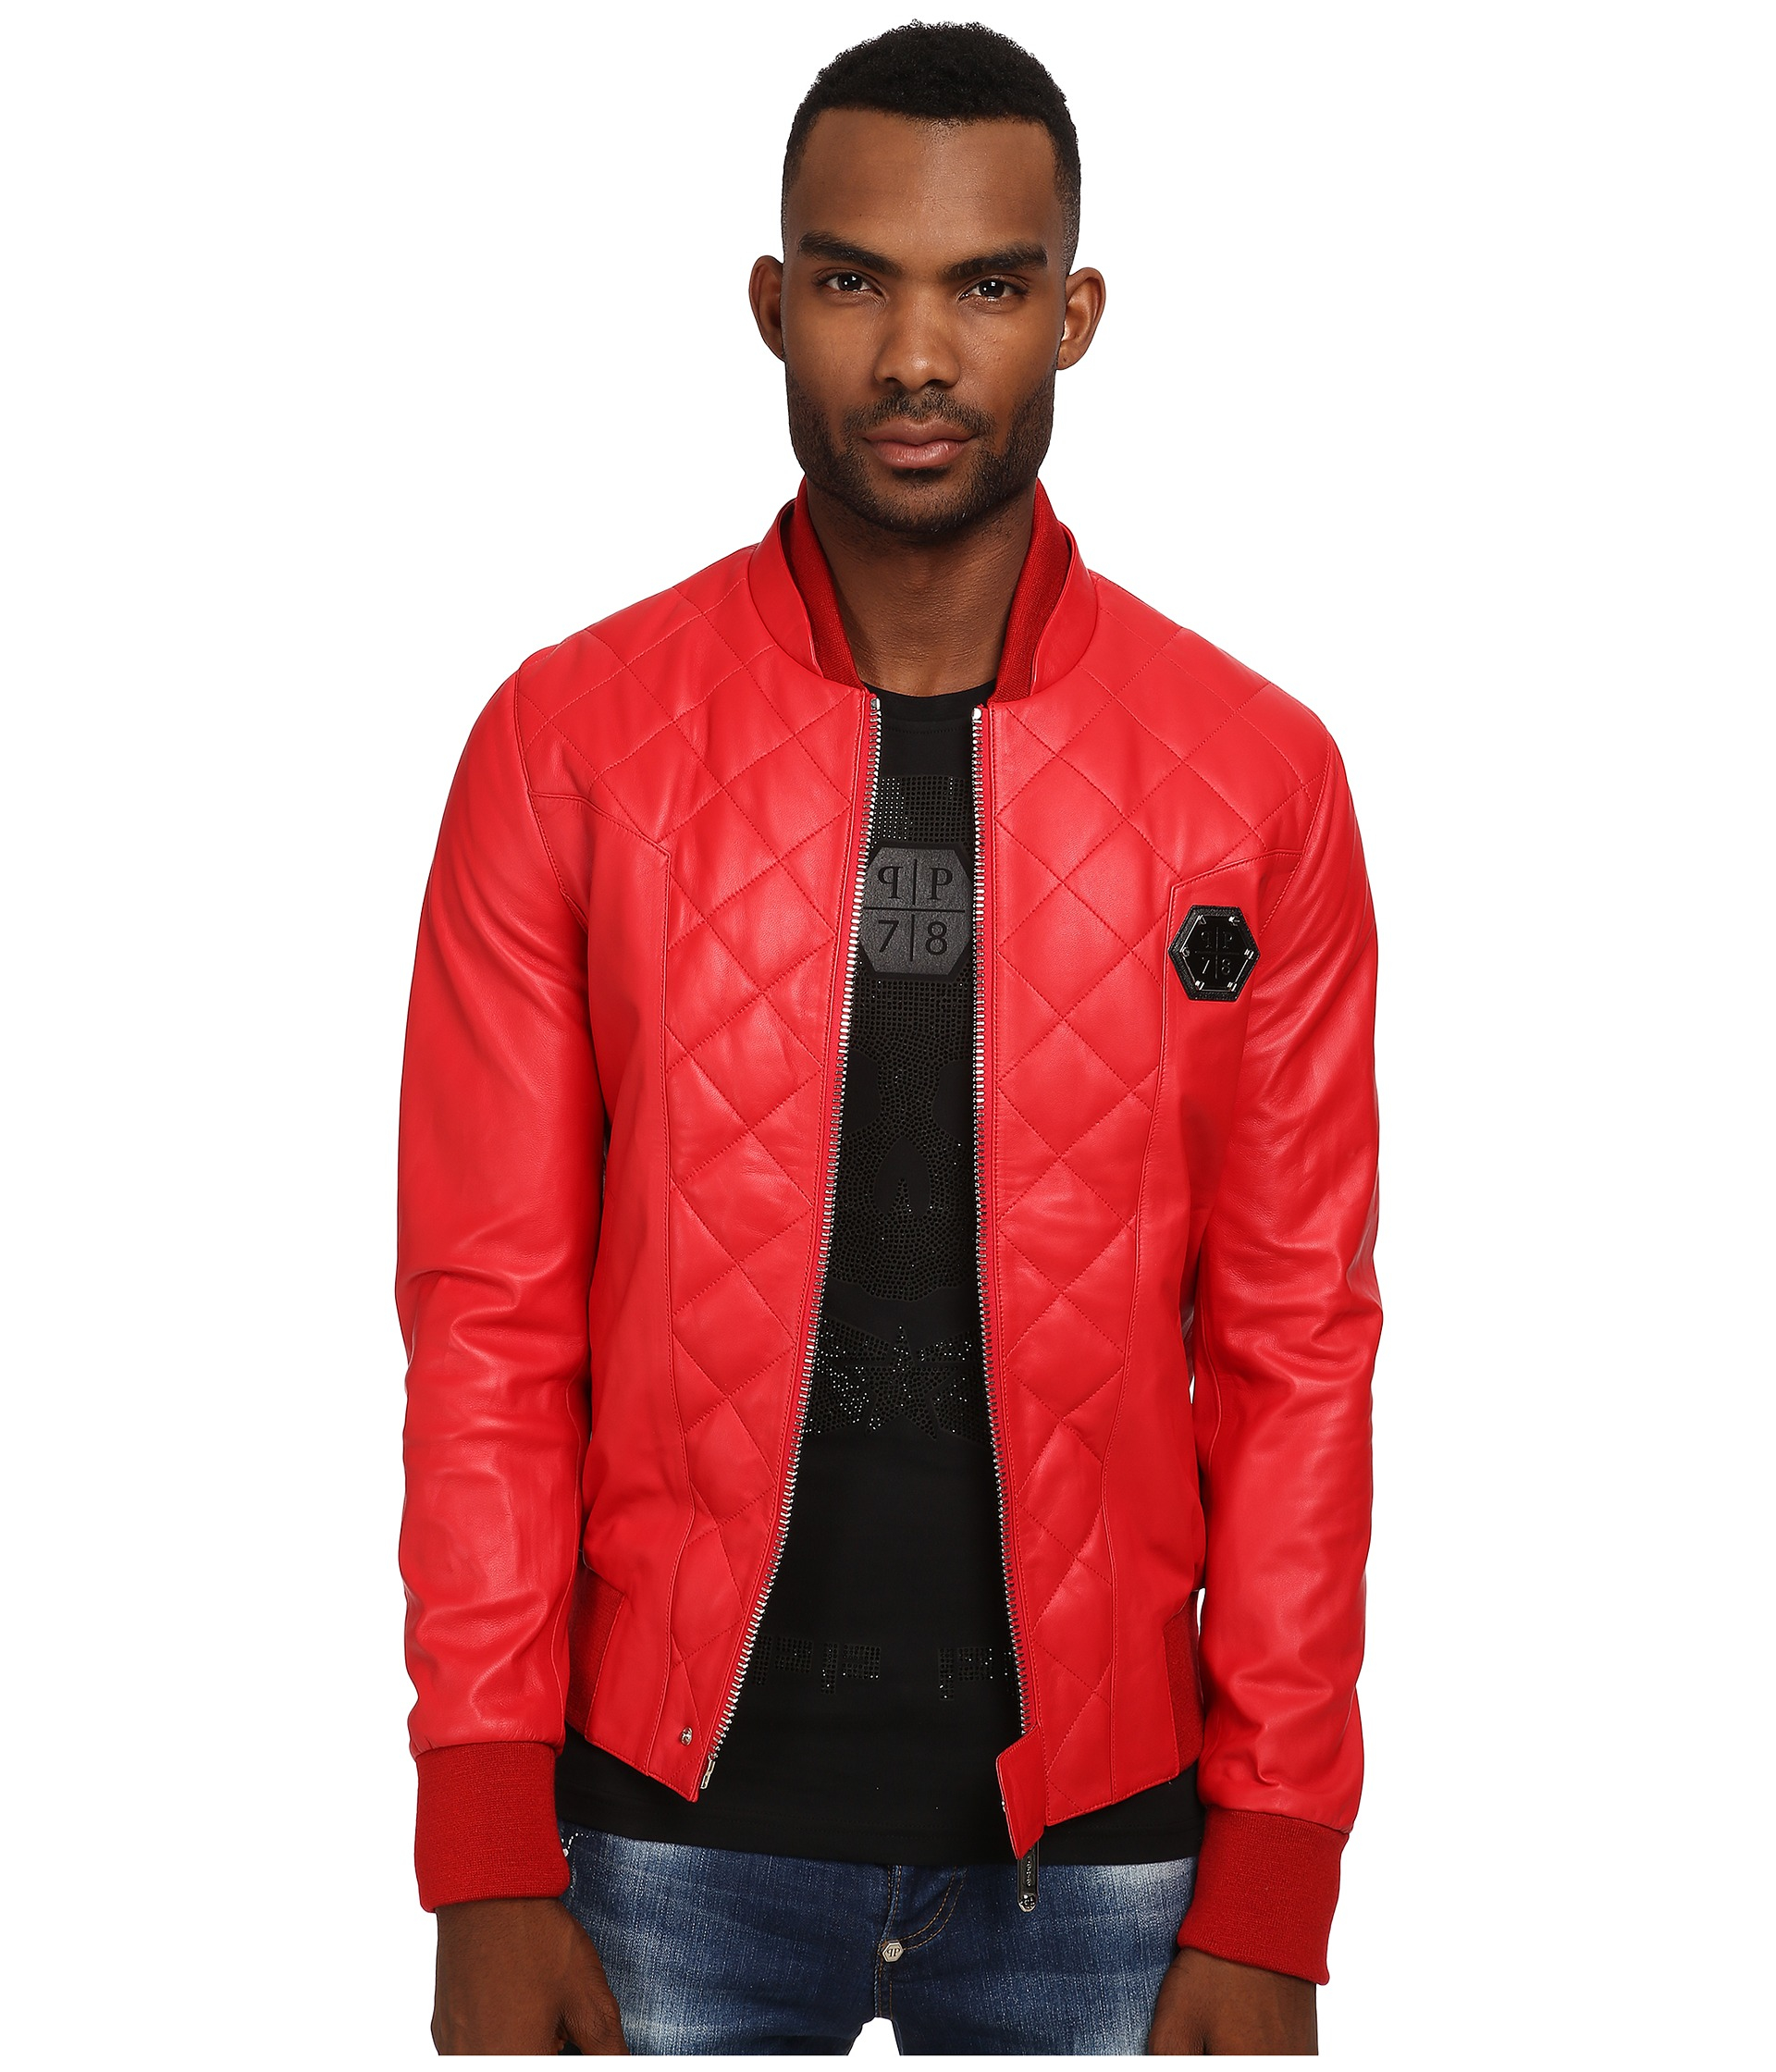 Philipp Plein No One Leather Jacket In Red For Men Lyst